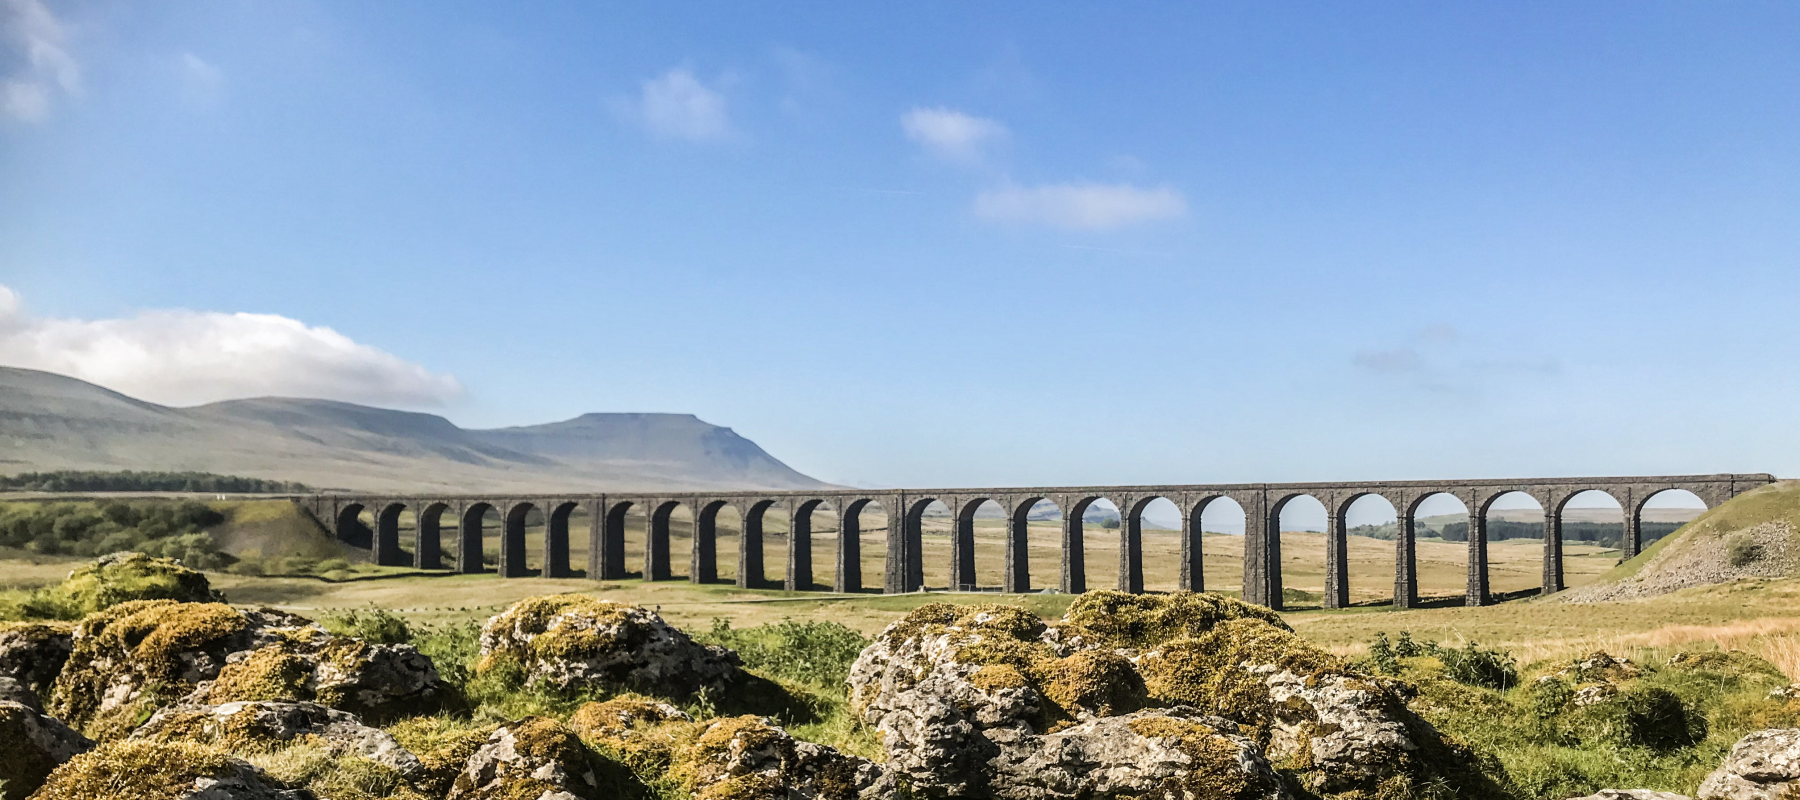 The impressive Yorkshire Dales and Ribblehead Viaduct